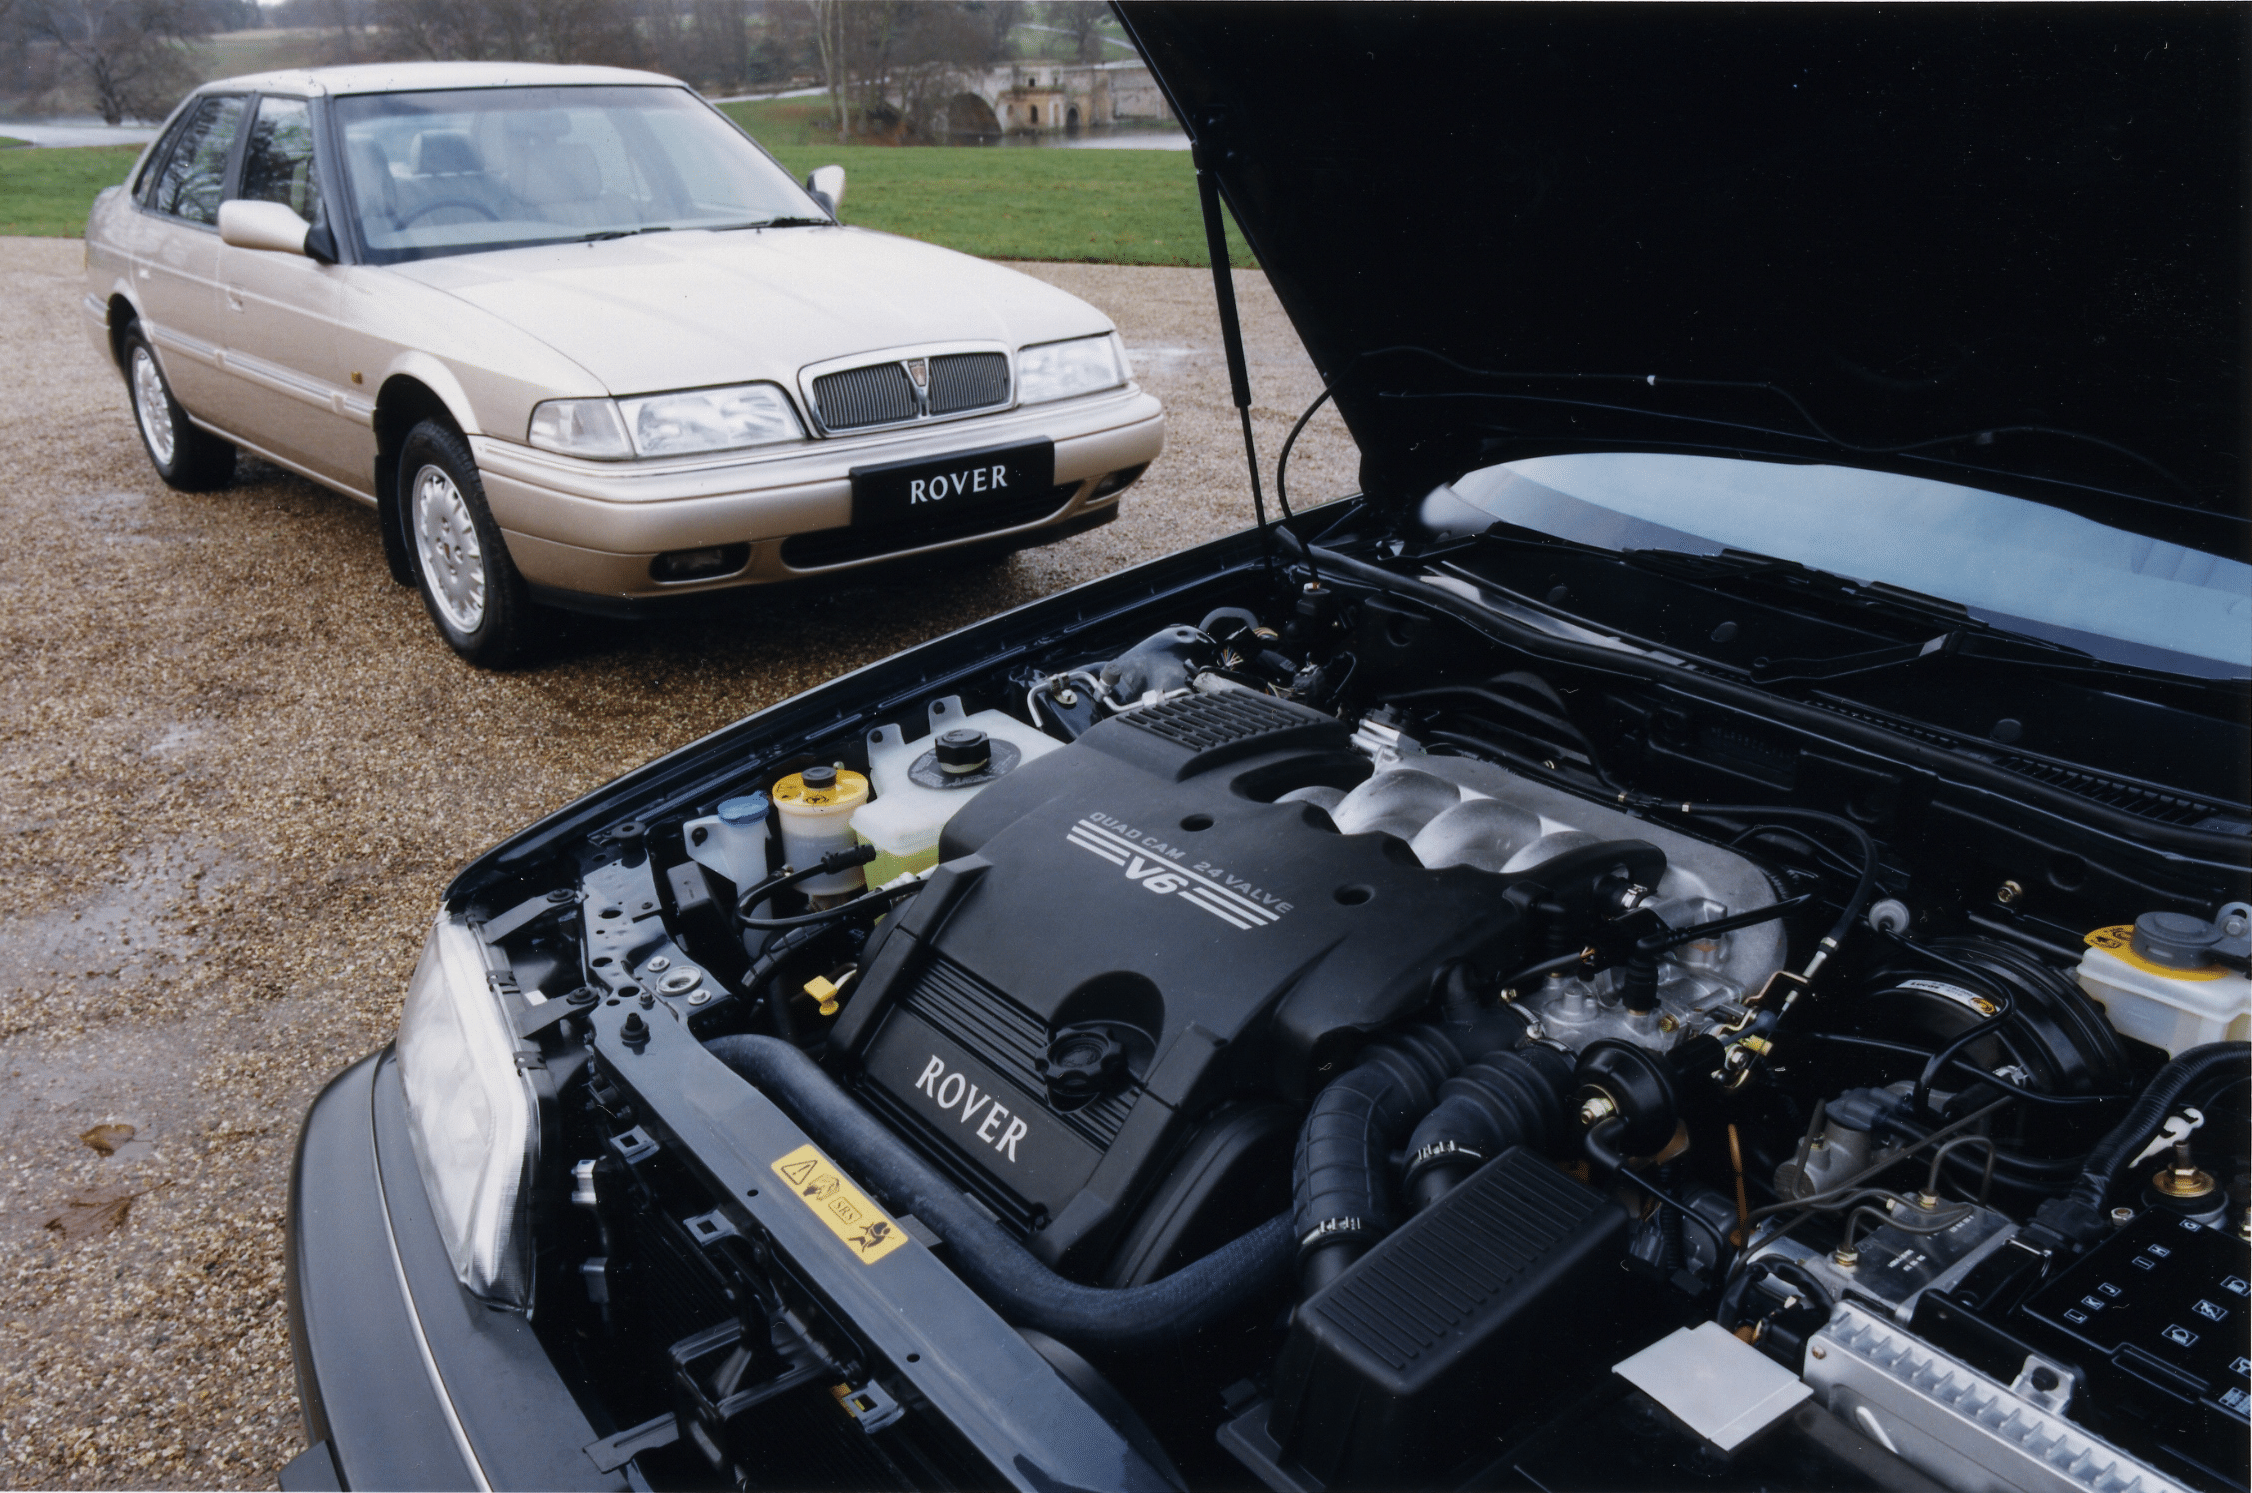 Rover 800, rover, 800, vitesse, stirling, rover vitesse, rover stirling, longbridge, british car, 820, 825, 827, coupe, saloon, turbo, classic car, retro car, motoring, automotive, motoring, car, cars